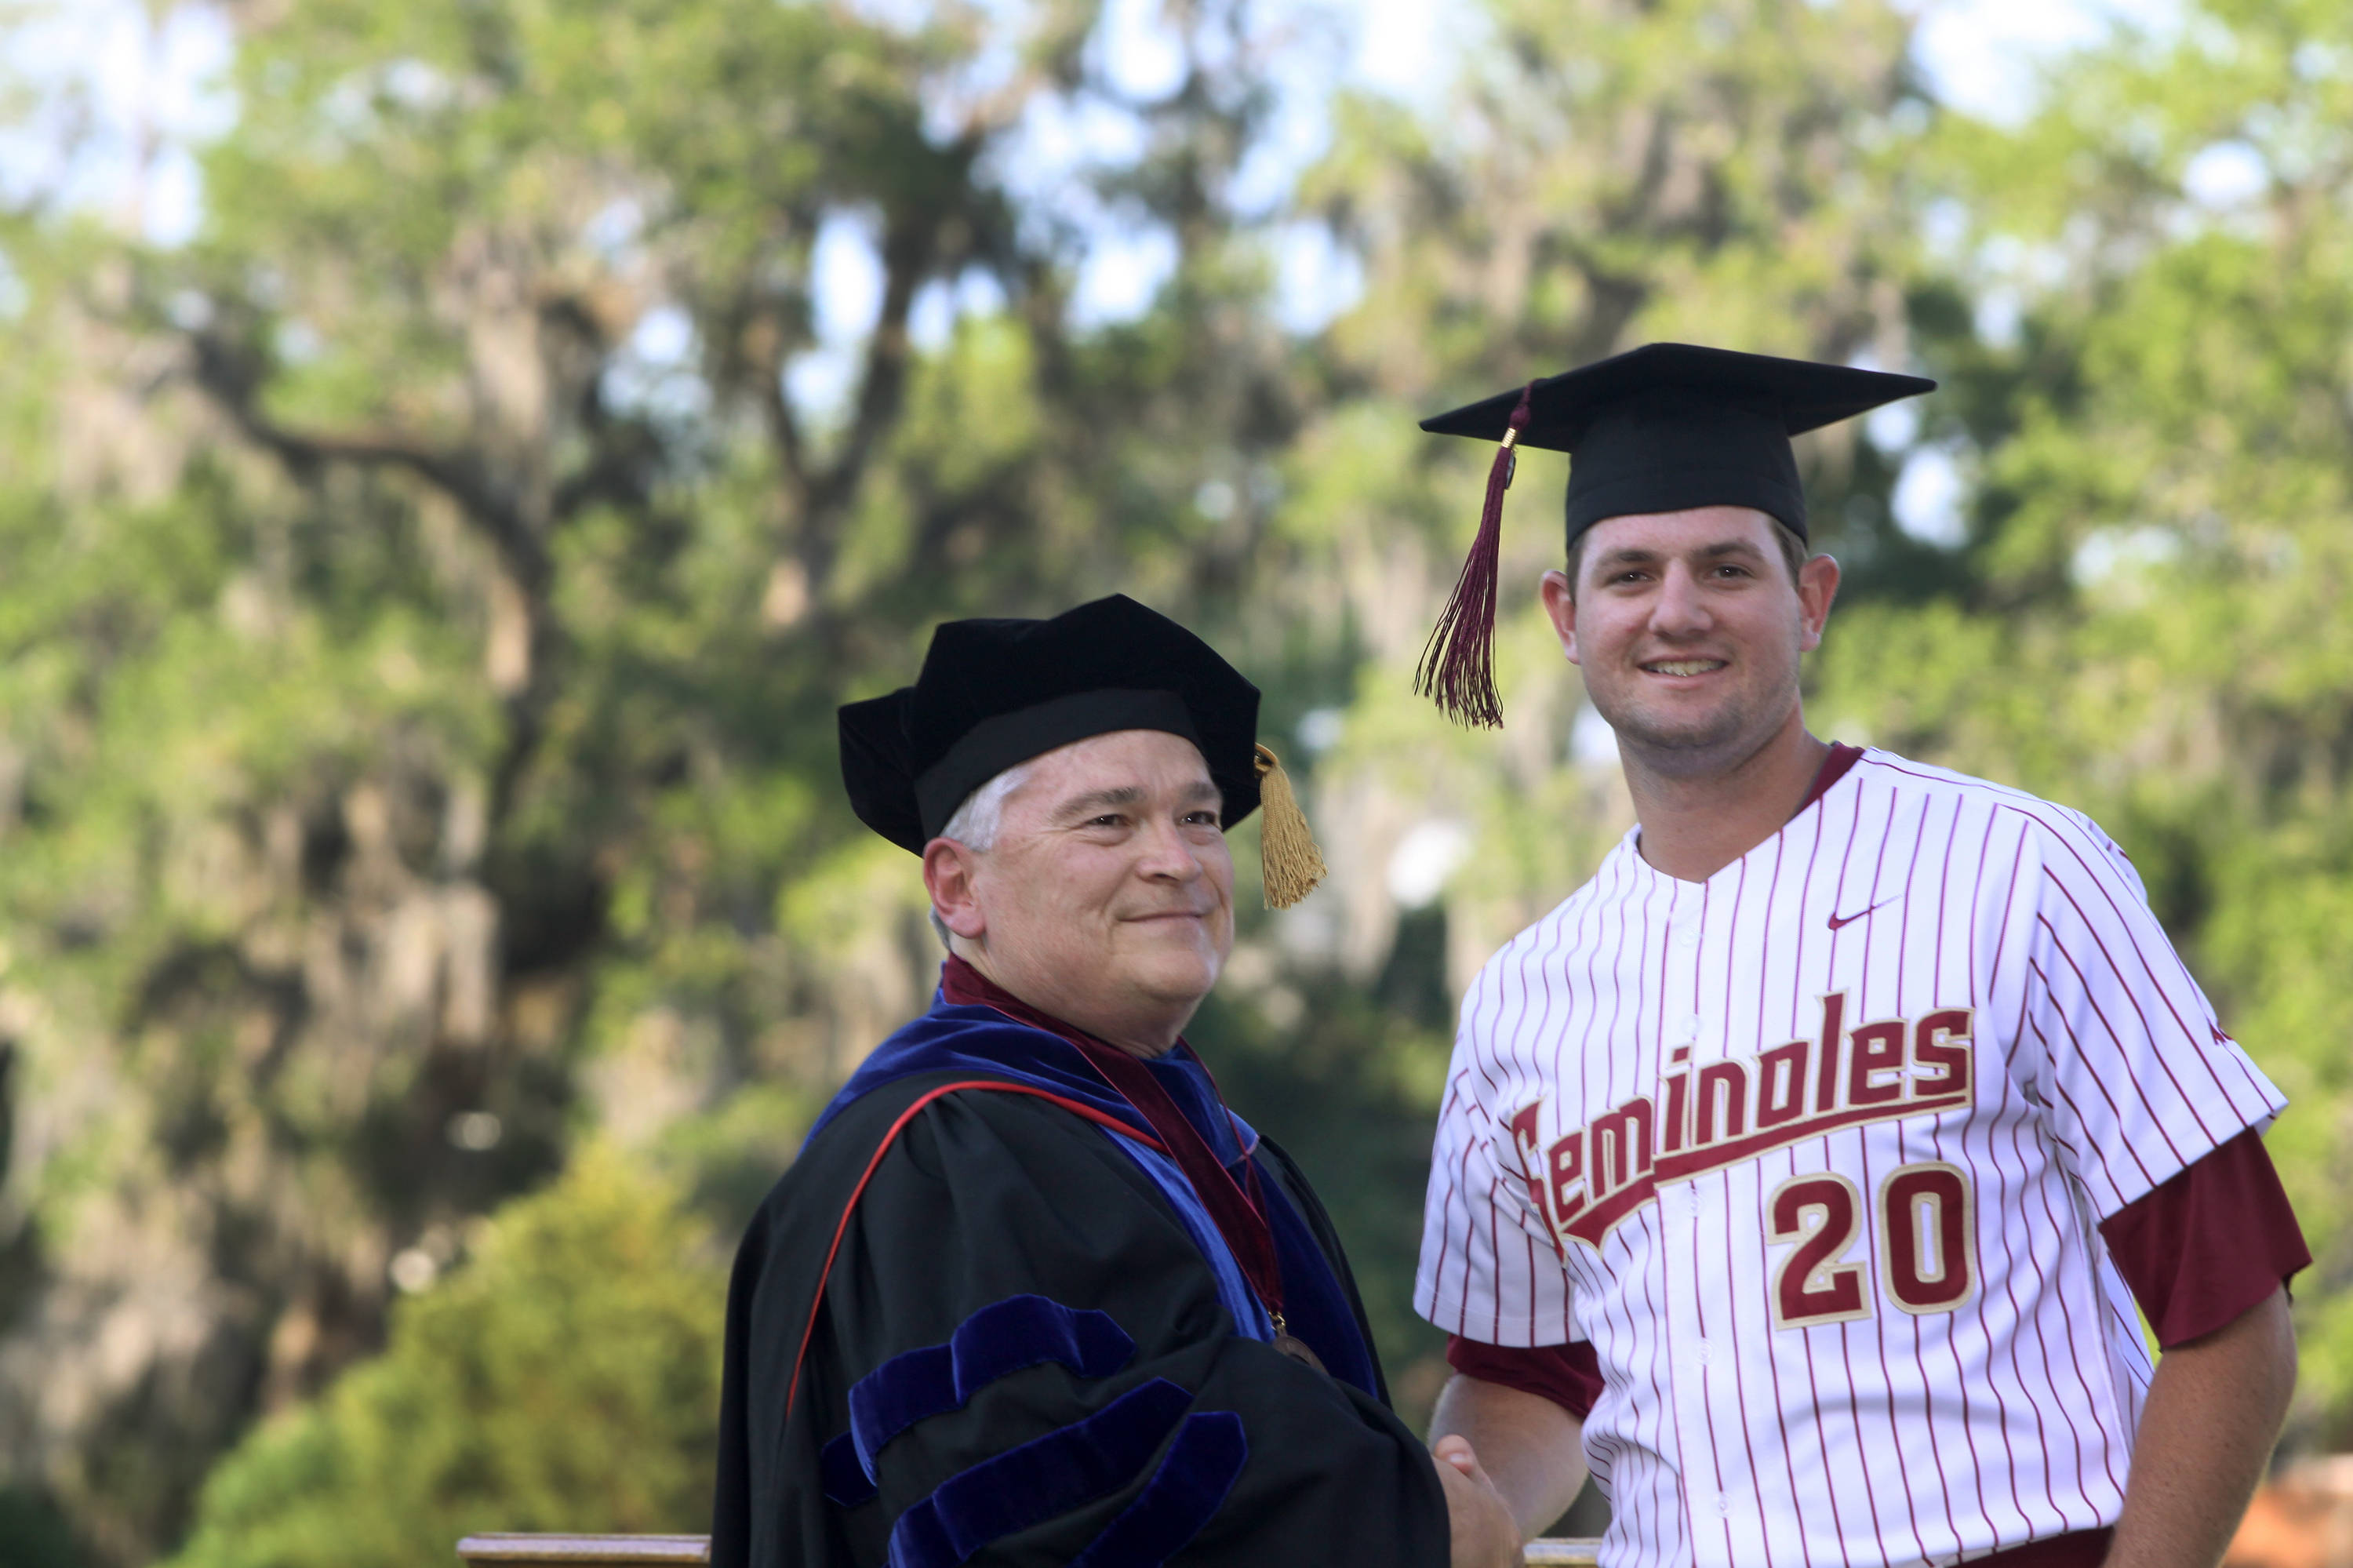 2011 Spring Graduation Ceremony held at Dick Howser Stadium to honor the graduating baseball seniors. Daniel Bennett (20) with President Barron